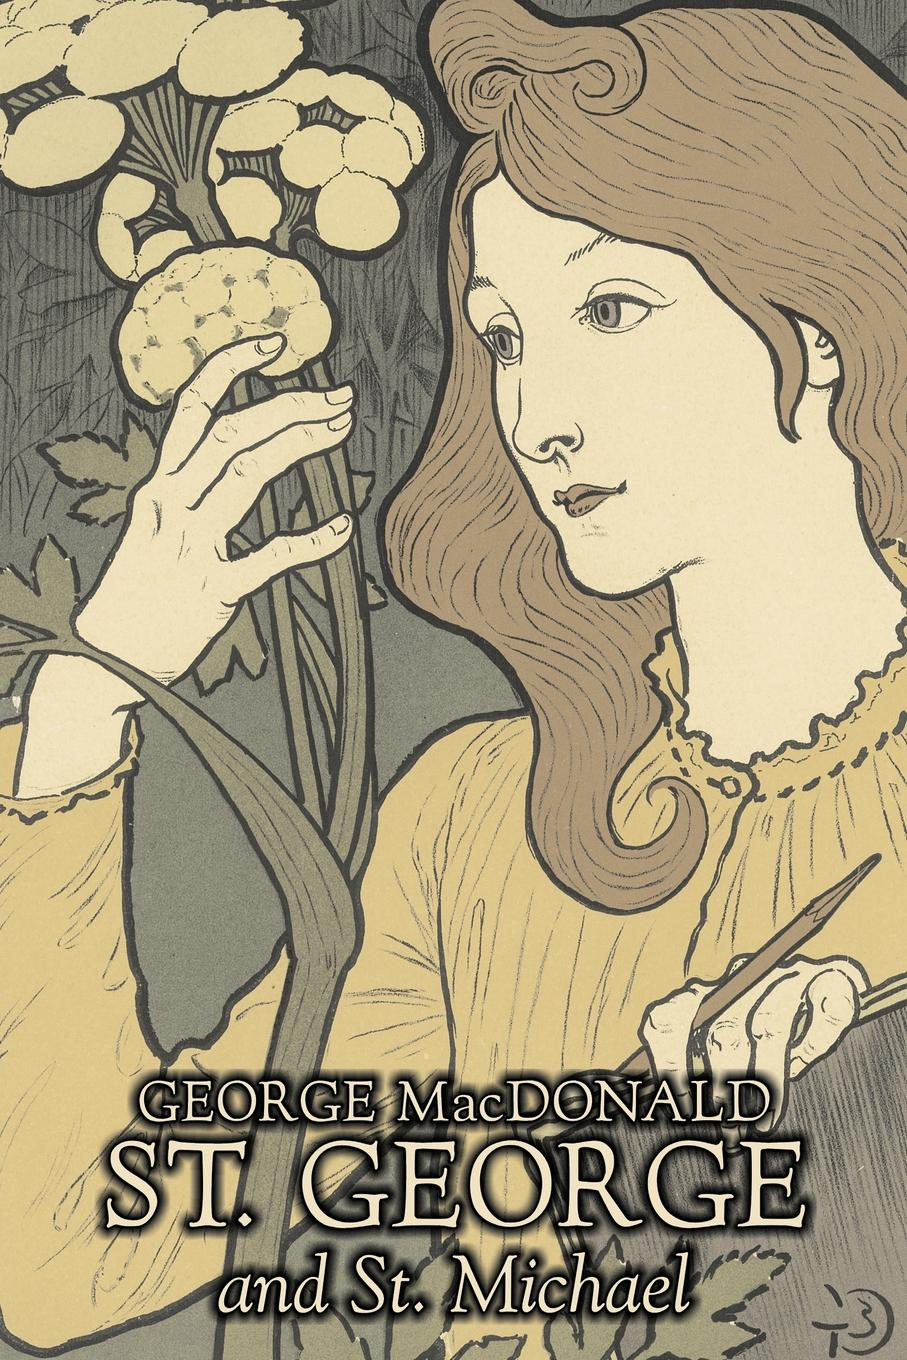 MacDonald George St. George and St. Michael by George Macdonald, Fiction, Classics, Action & Adventure st george for england songs and plays for st george s day